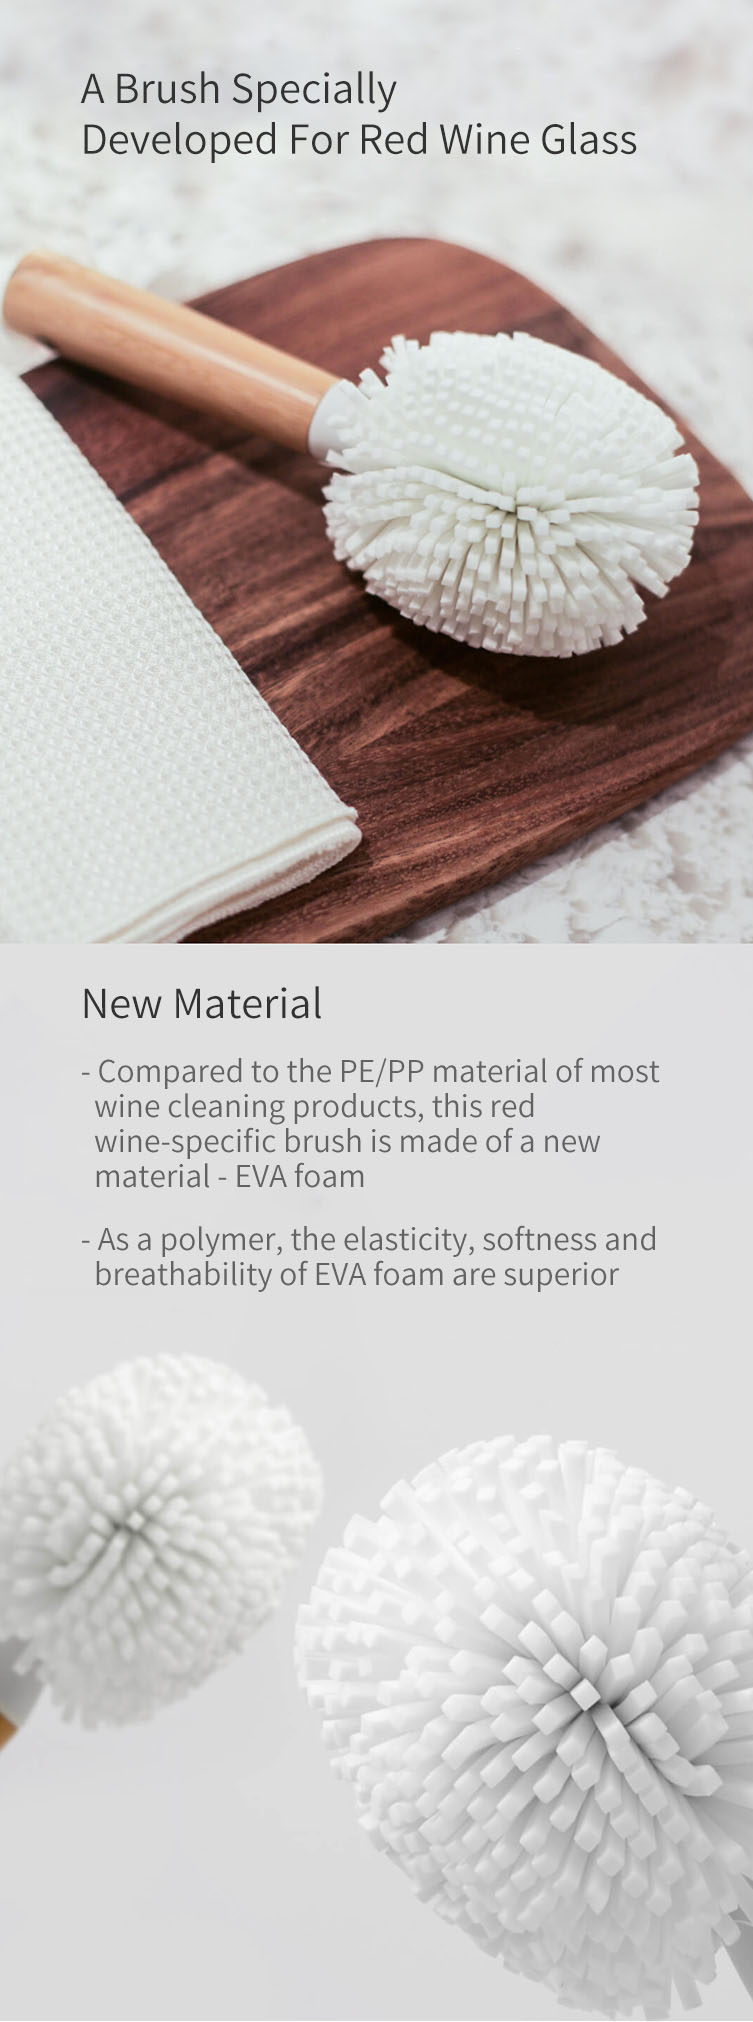 XIAOMI JIEZHI Bamboo Handle EVA Foam W ine Glass Brushes Cleaning Brushes Kitchen Cleaning Tools Glass Cleaning Brushes